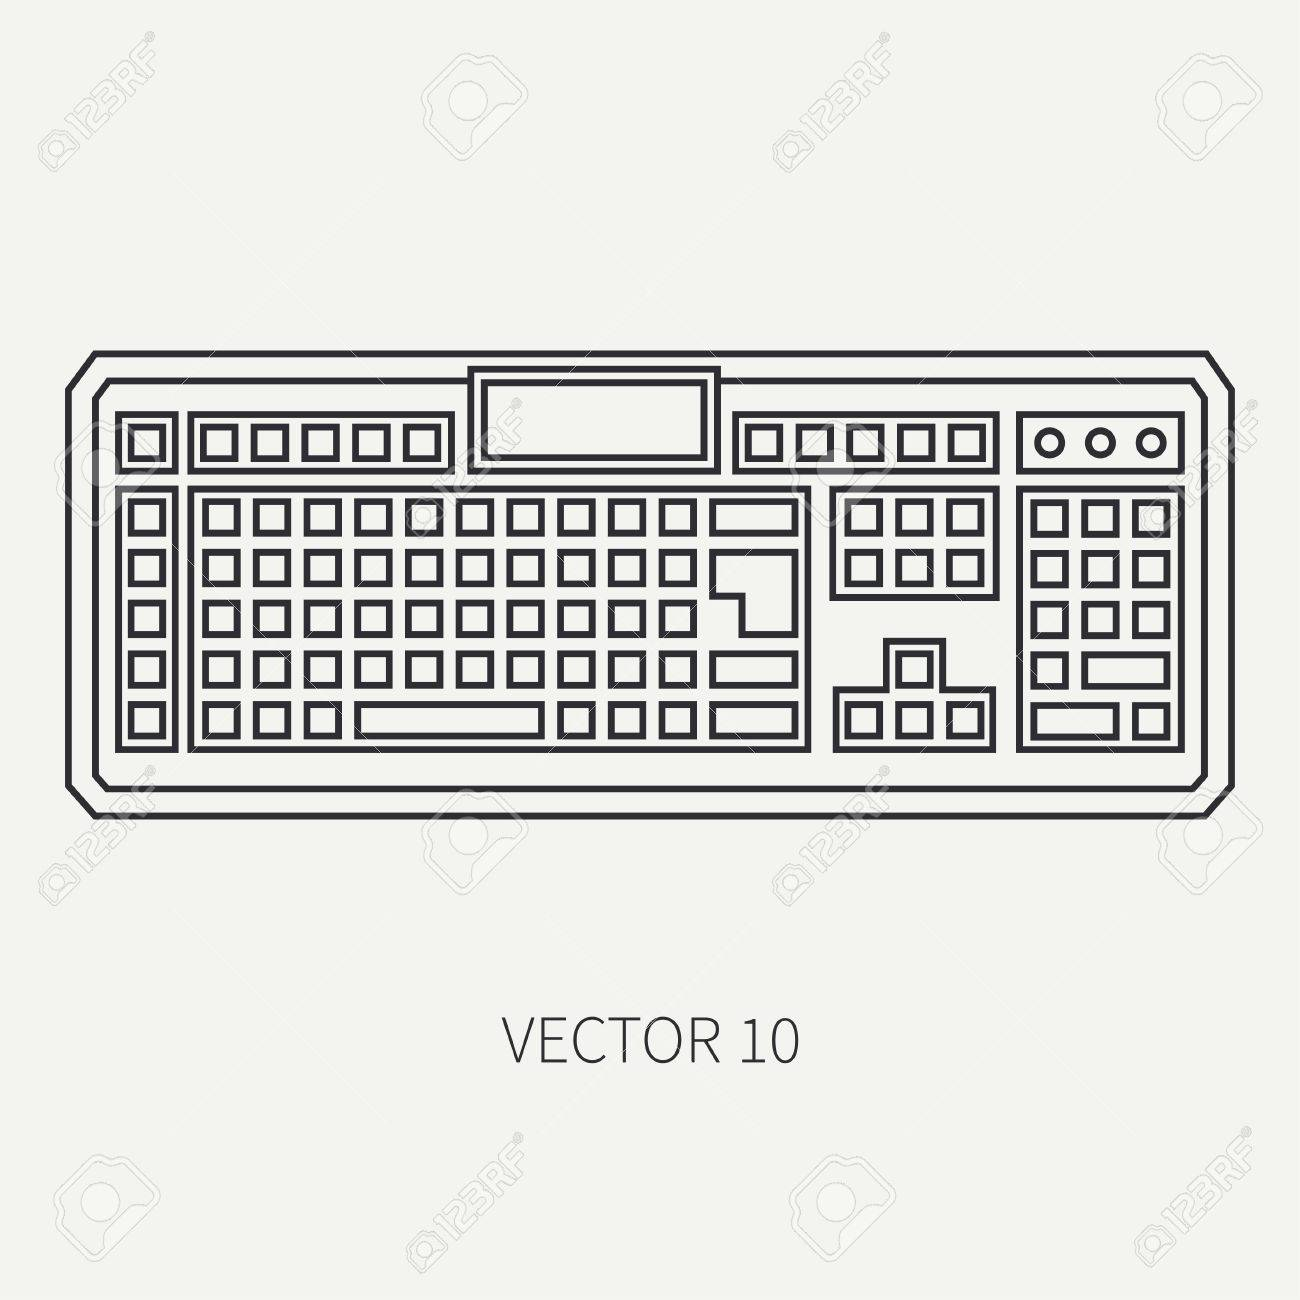 Line Flat Vector Computer Part Icon Keyboard Cartoon Style Royalty Free Cliparts Vectors And Stock Illustration Image 77976093